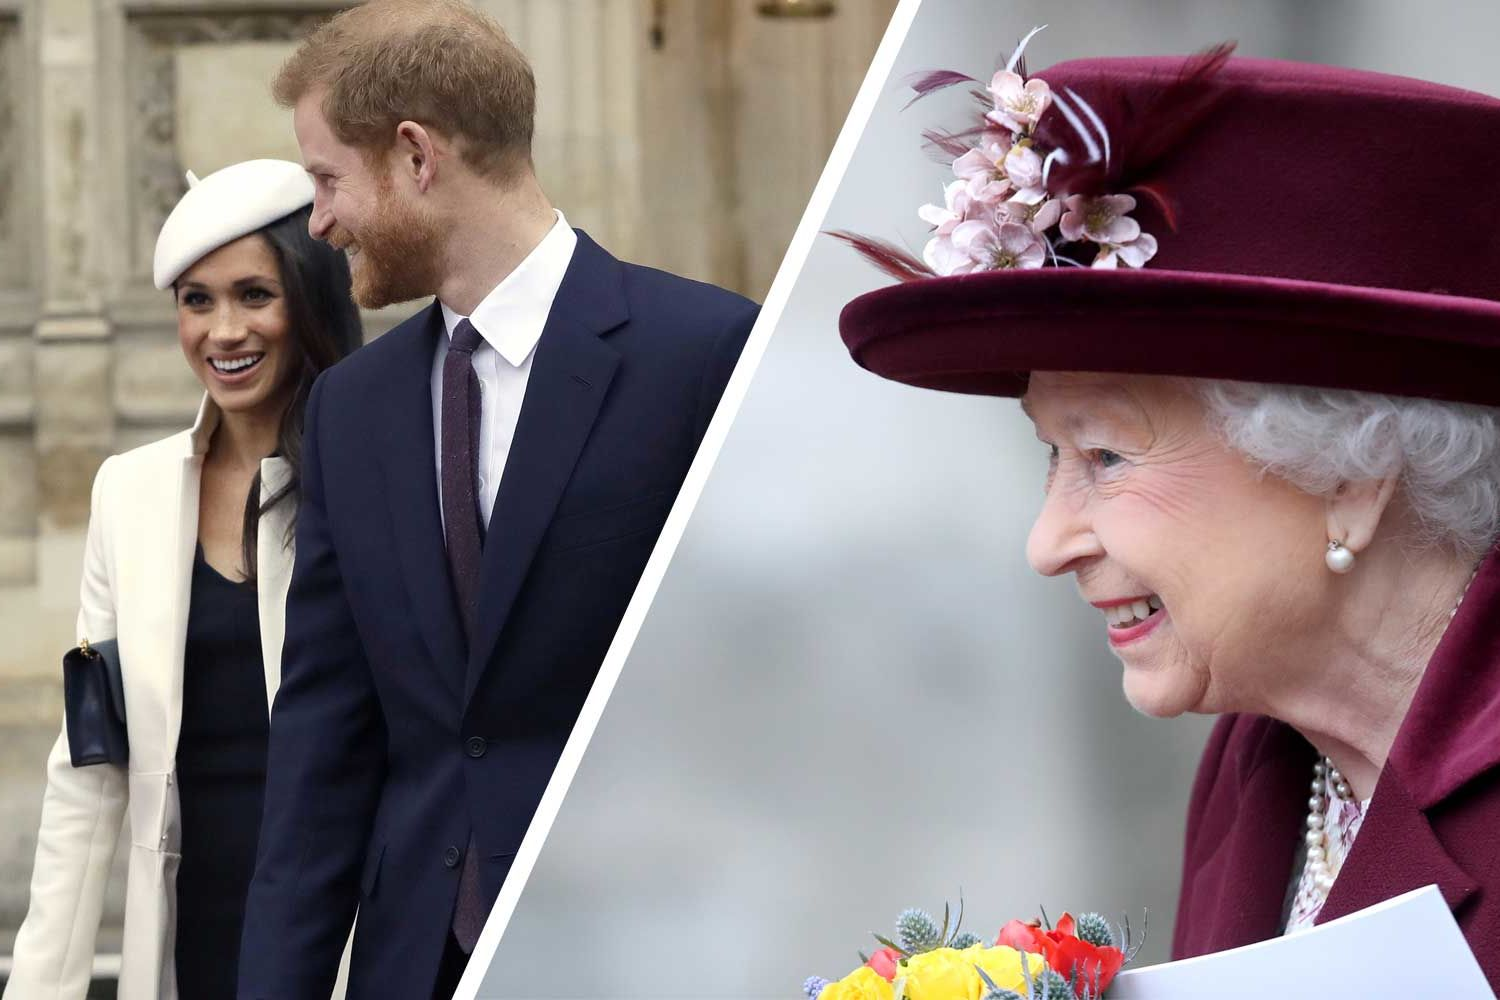 The Queen Just Gave Her Official Blessing for Prince Harry and Meghan Markle's Royal Wedding